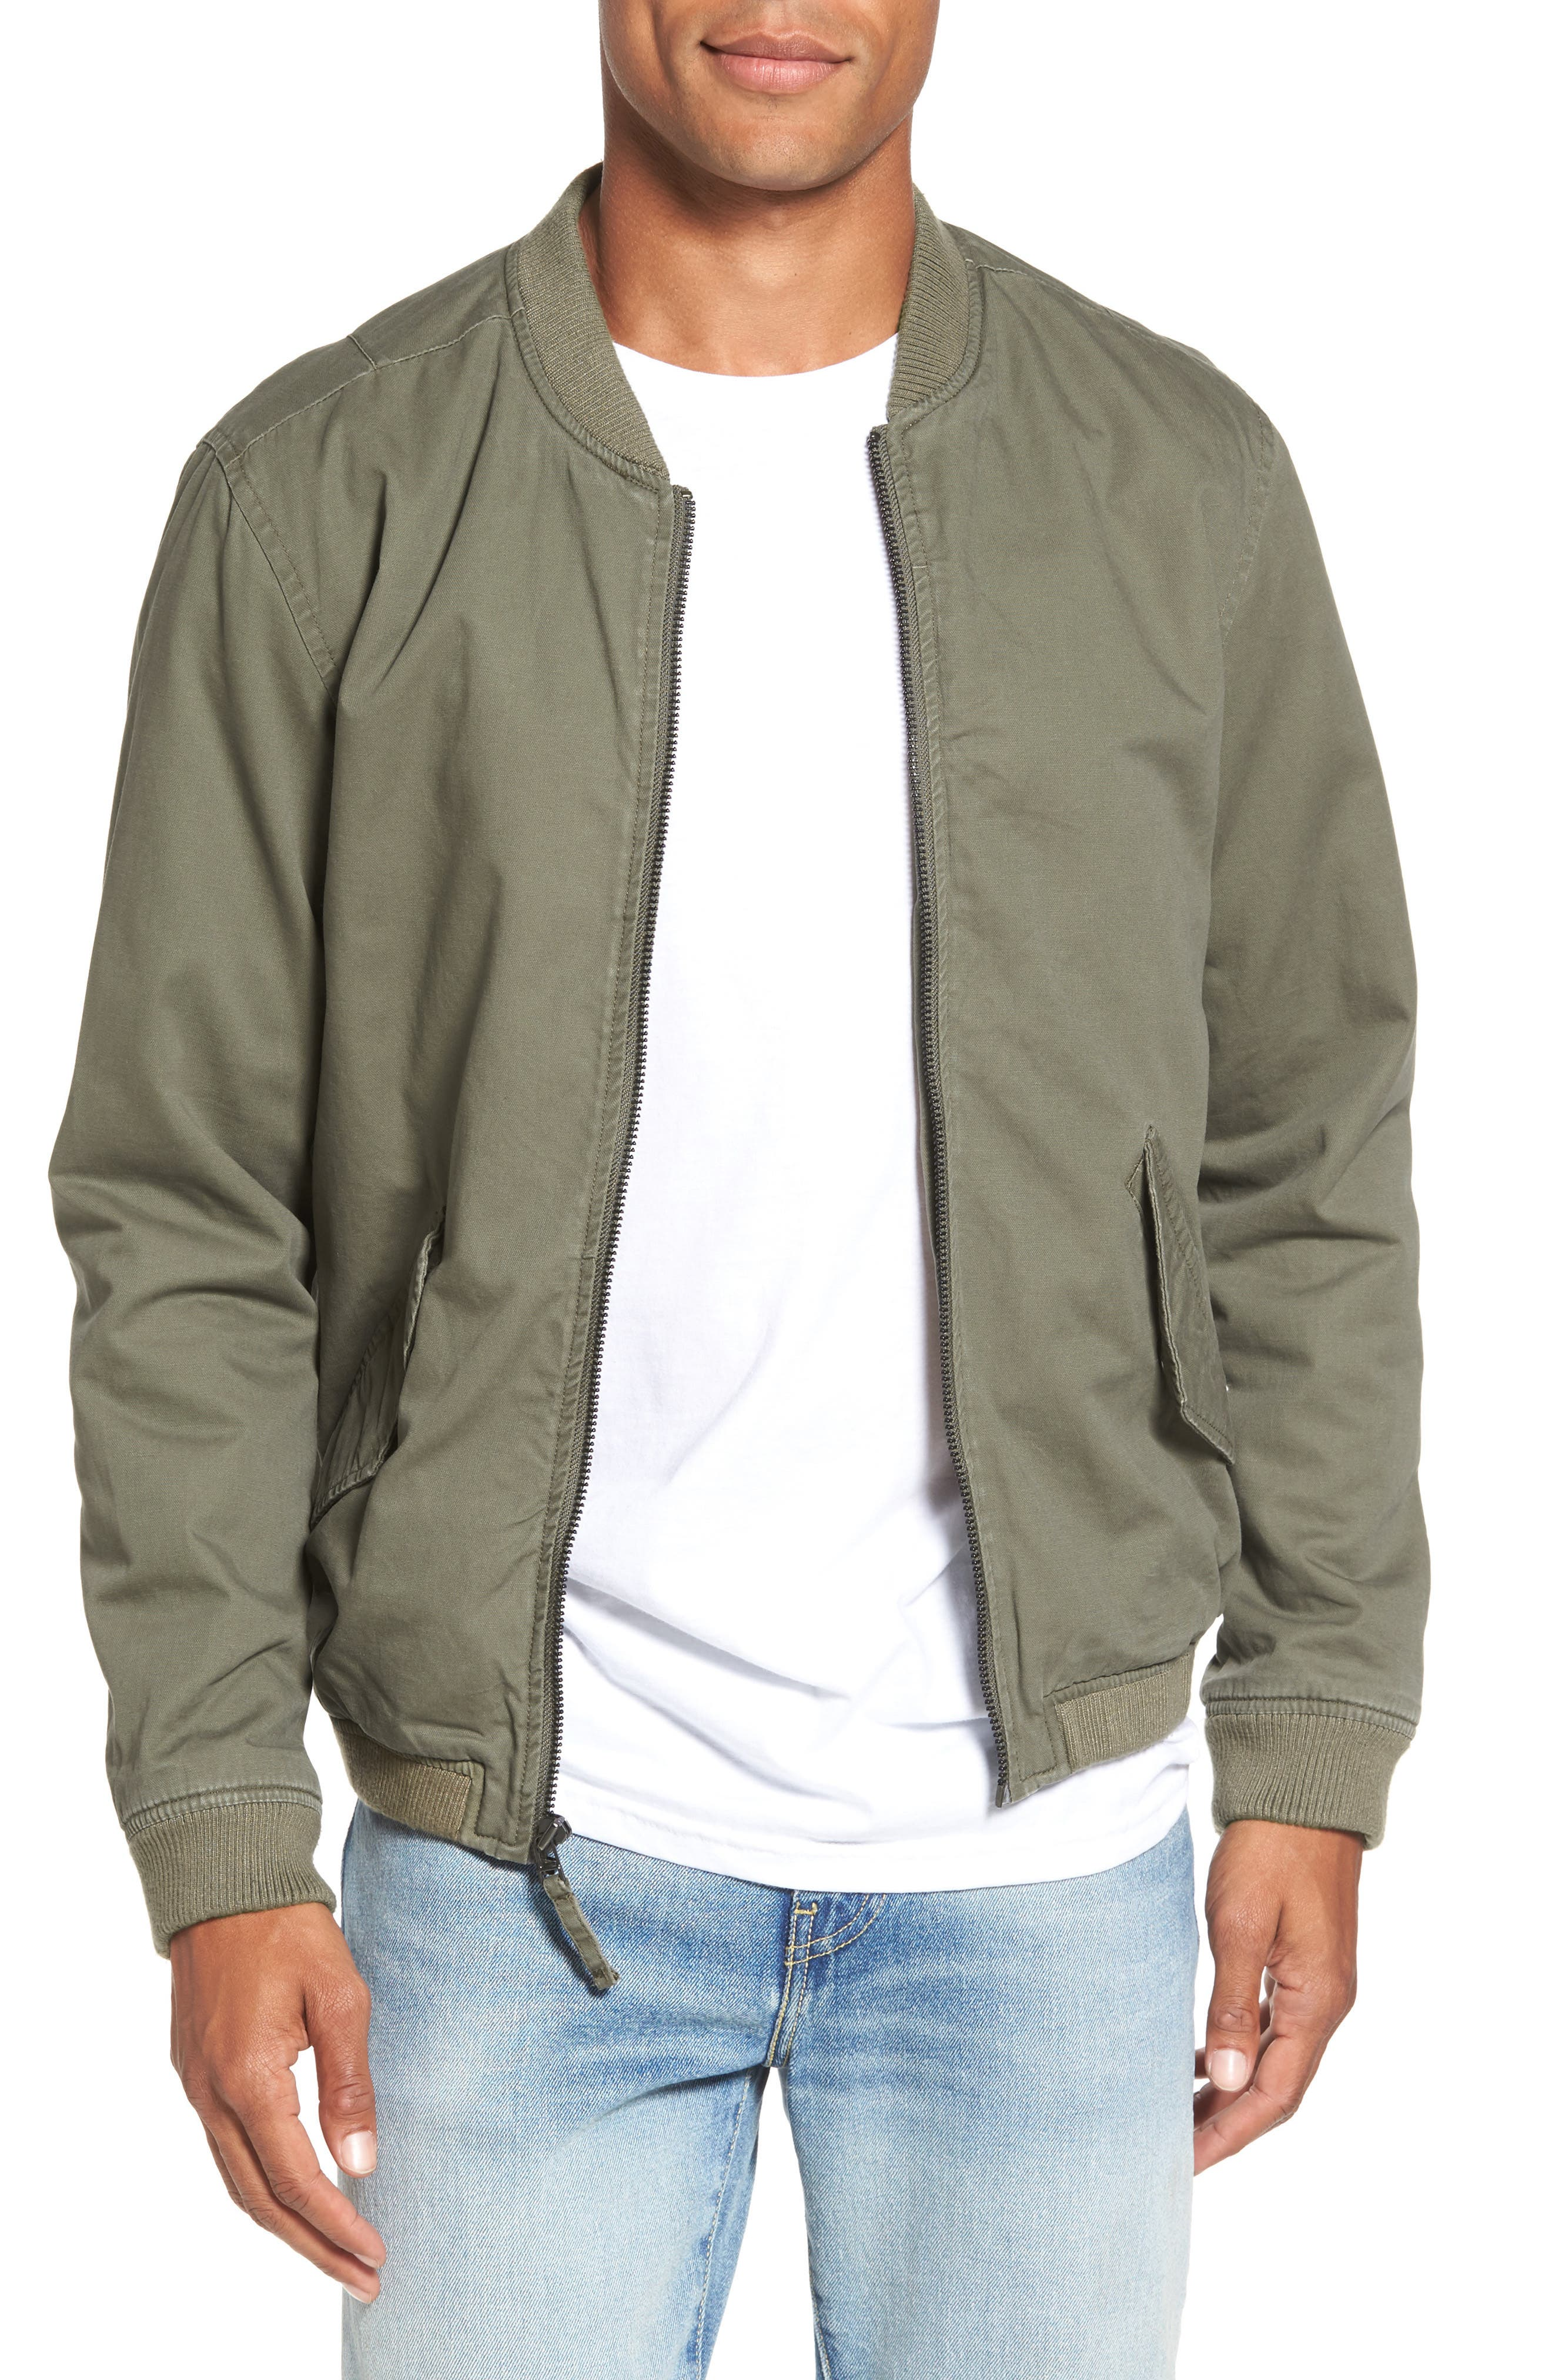 All City Bomber Jacket,                         Main,                         color, 340